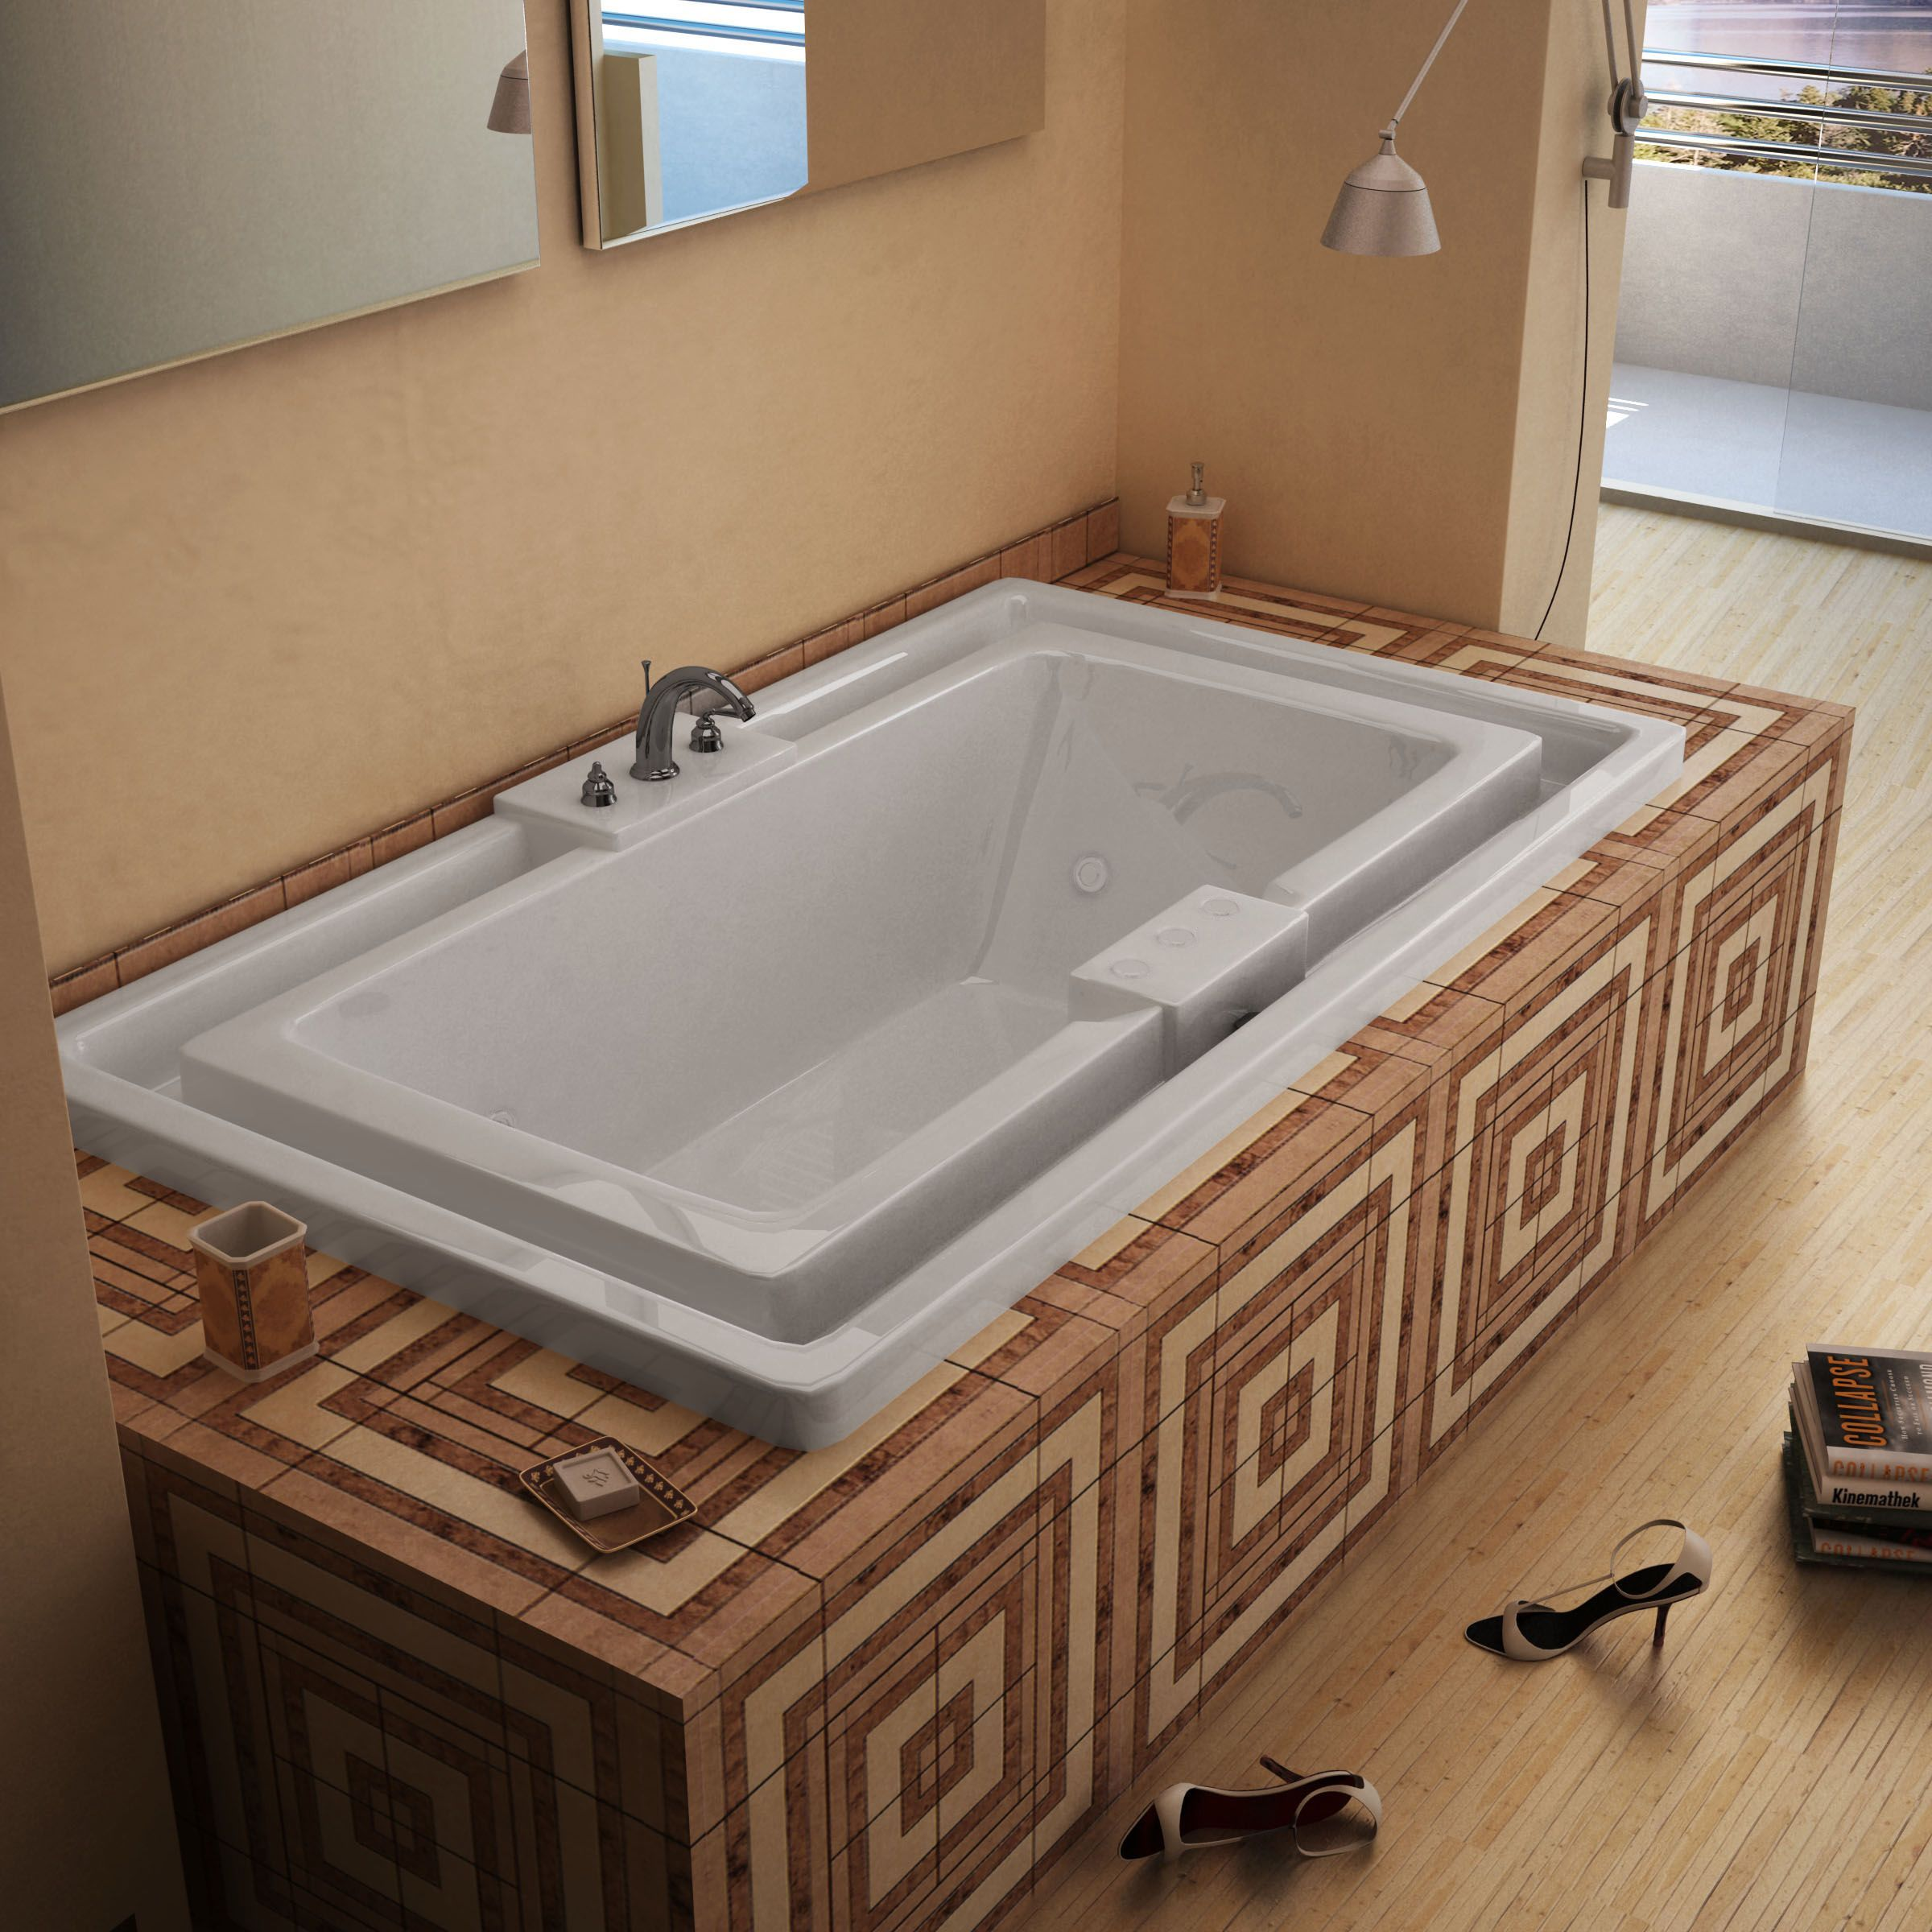 Mountain Home Evans 46 in. x 78 in. Acrylic Whirlpool Jetted Drop-in ...